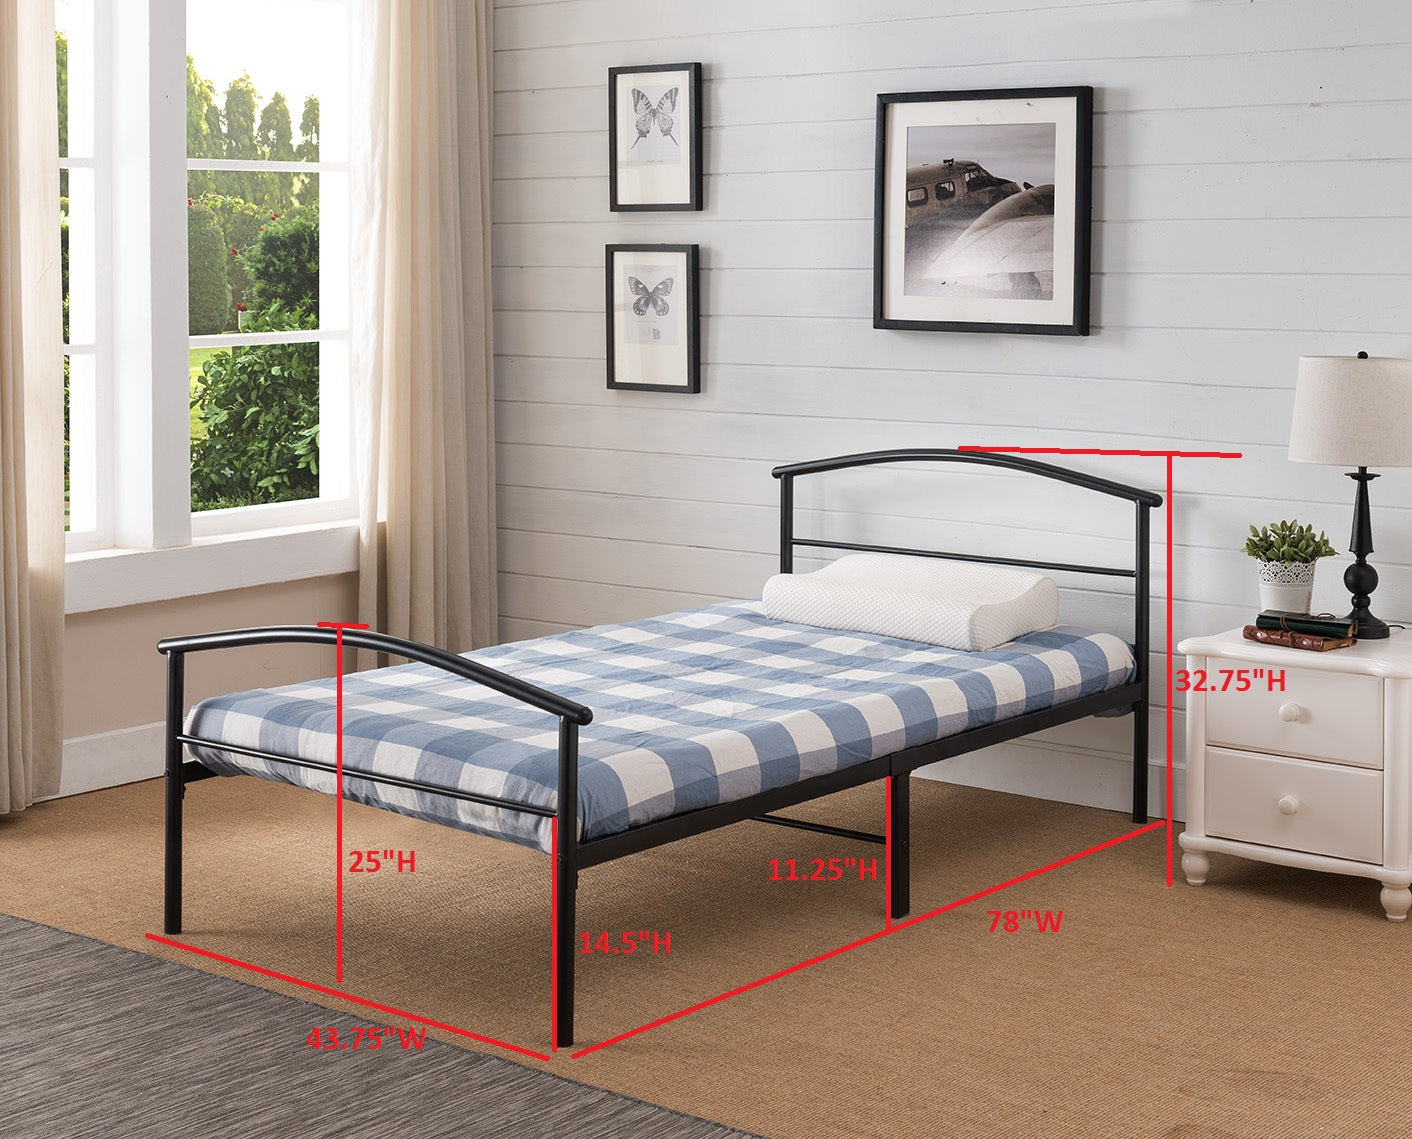 inch pin size metal priage fullmetal frame frames queen for less bed platform